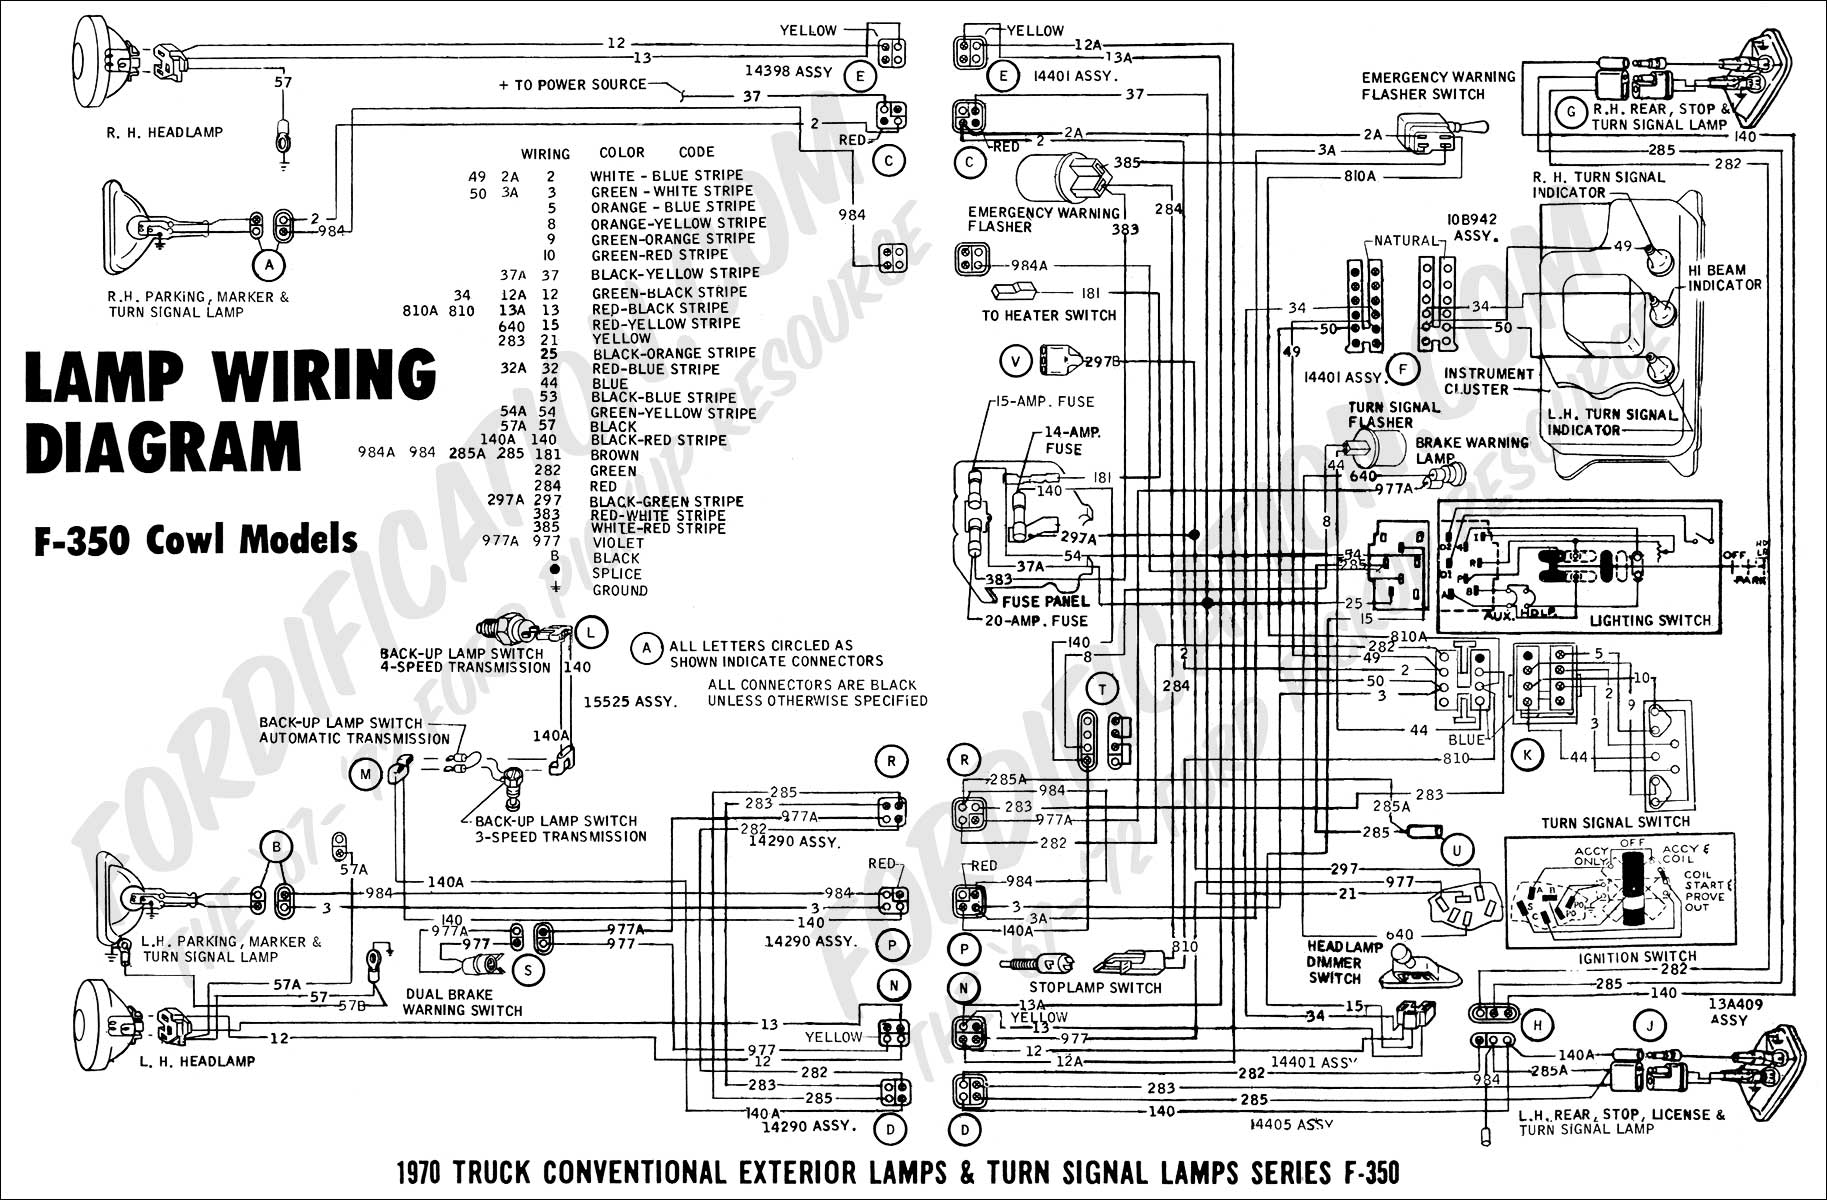 2011 f350 wiring diagram wiring diagram document guide Nissan Versa Headlight Switch Wiring Diagram 2011 f250 super duty wiring diagram headlights online wiring diagram 2005 ford f350 wiring diagram 2011